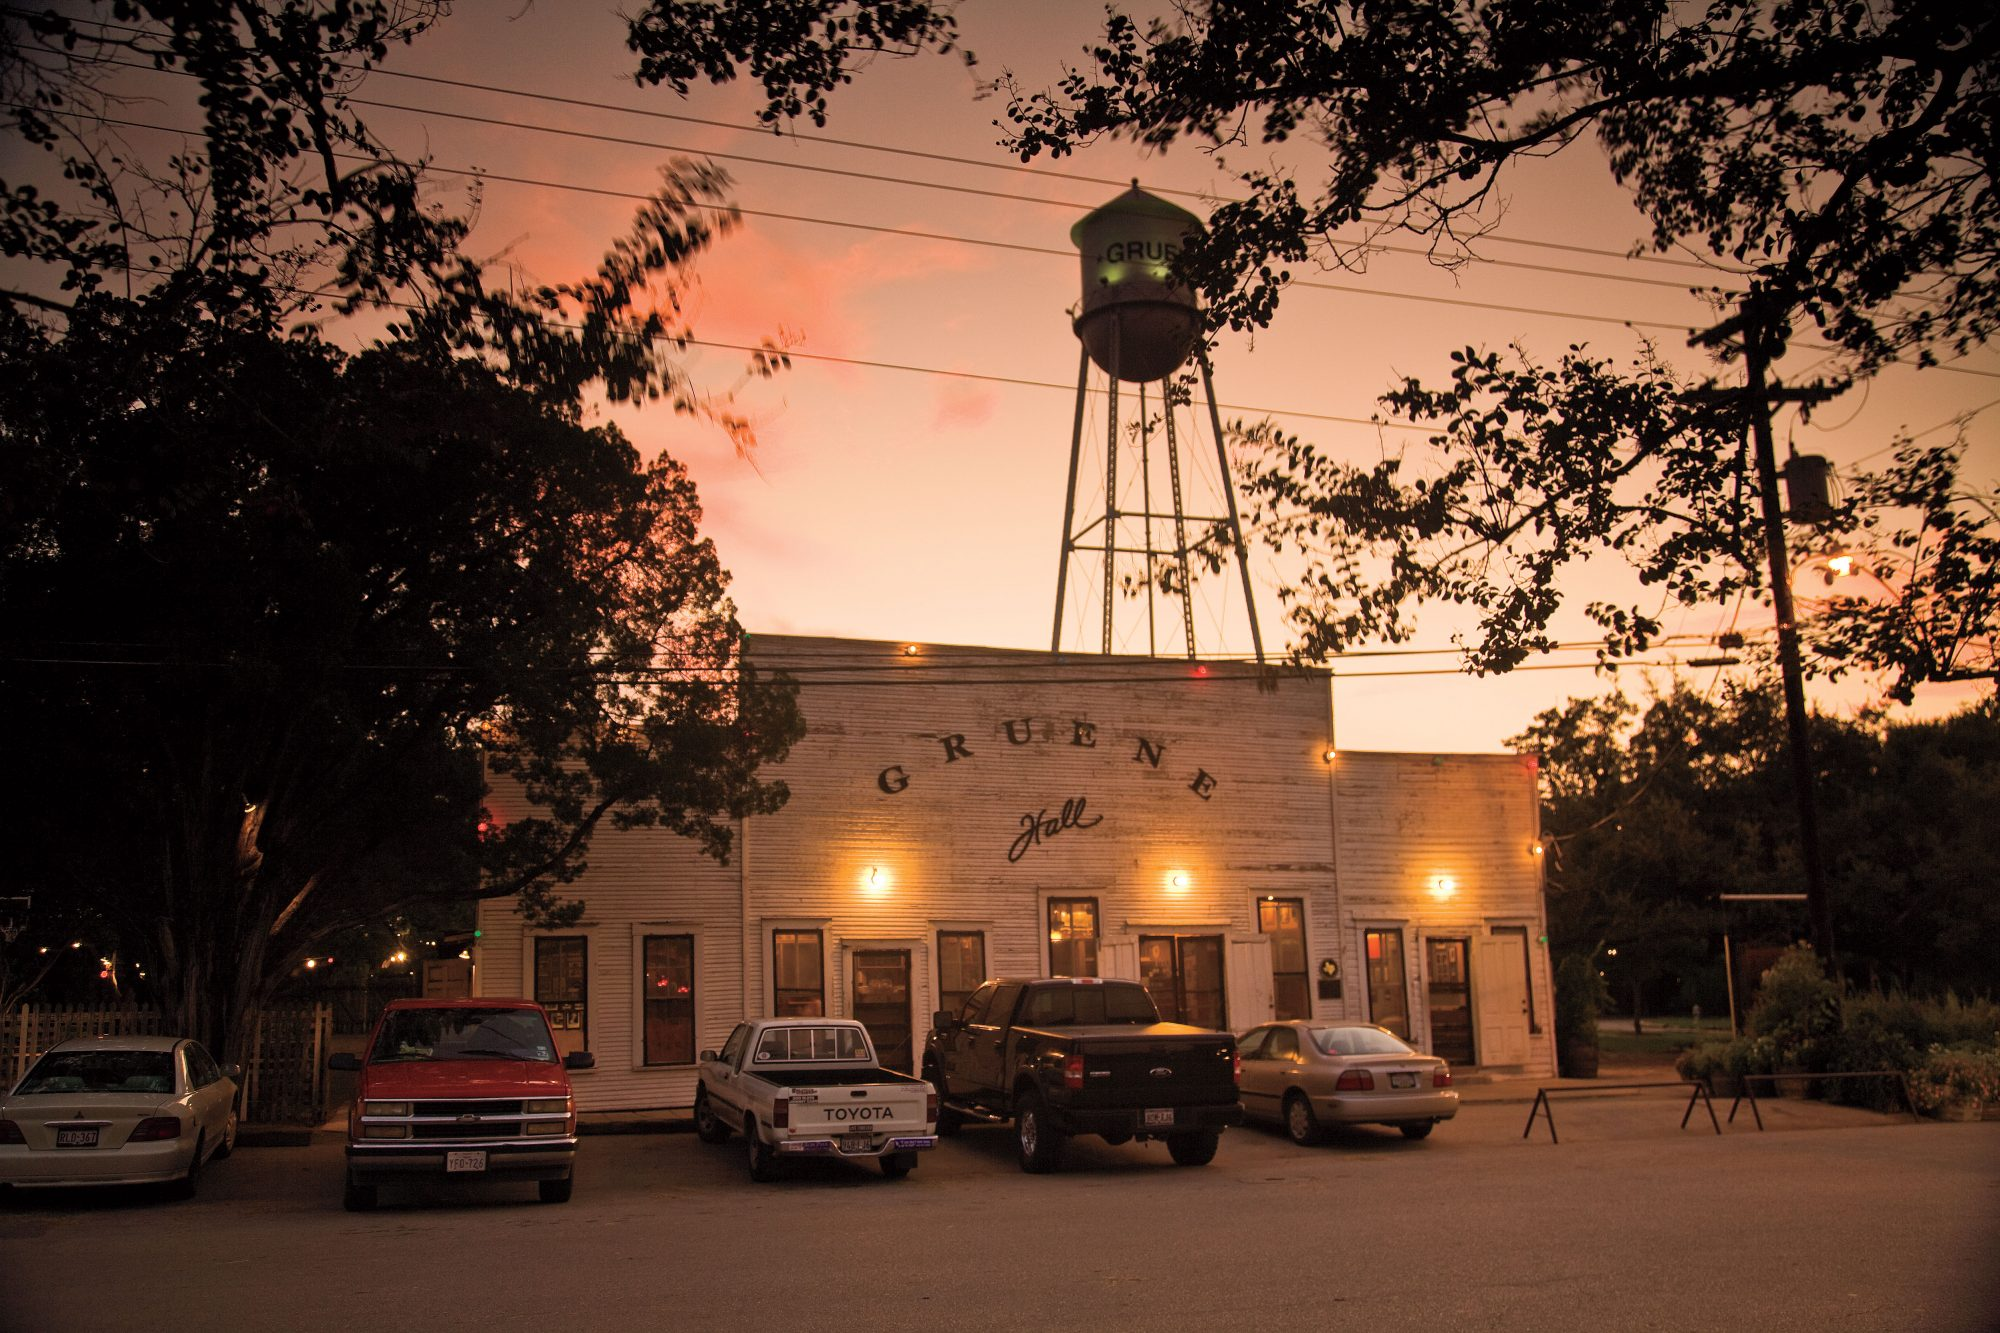 Best Southern Travel Destinations: Gruene Hall